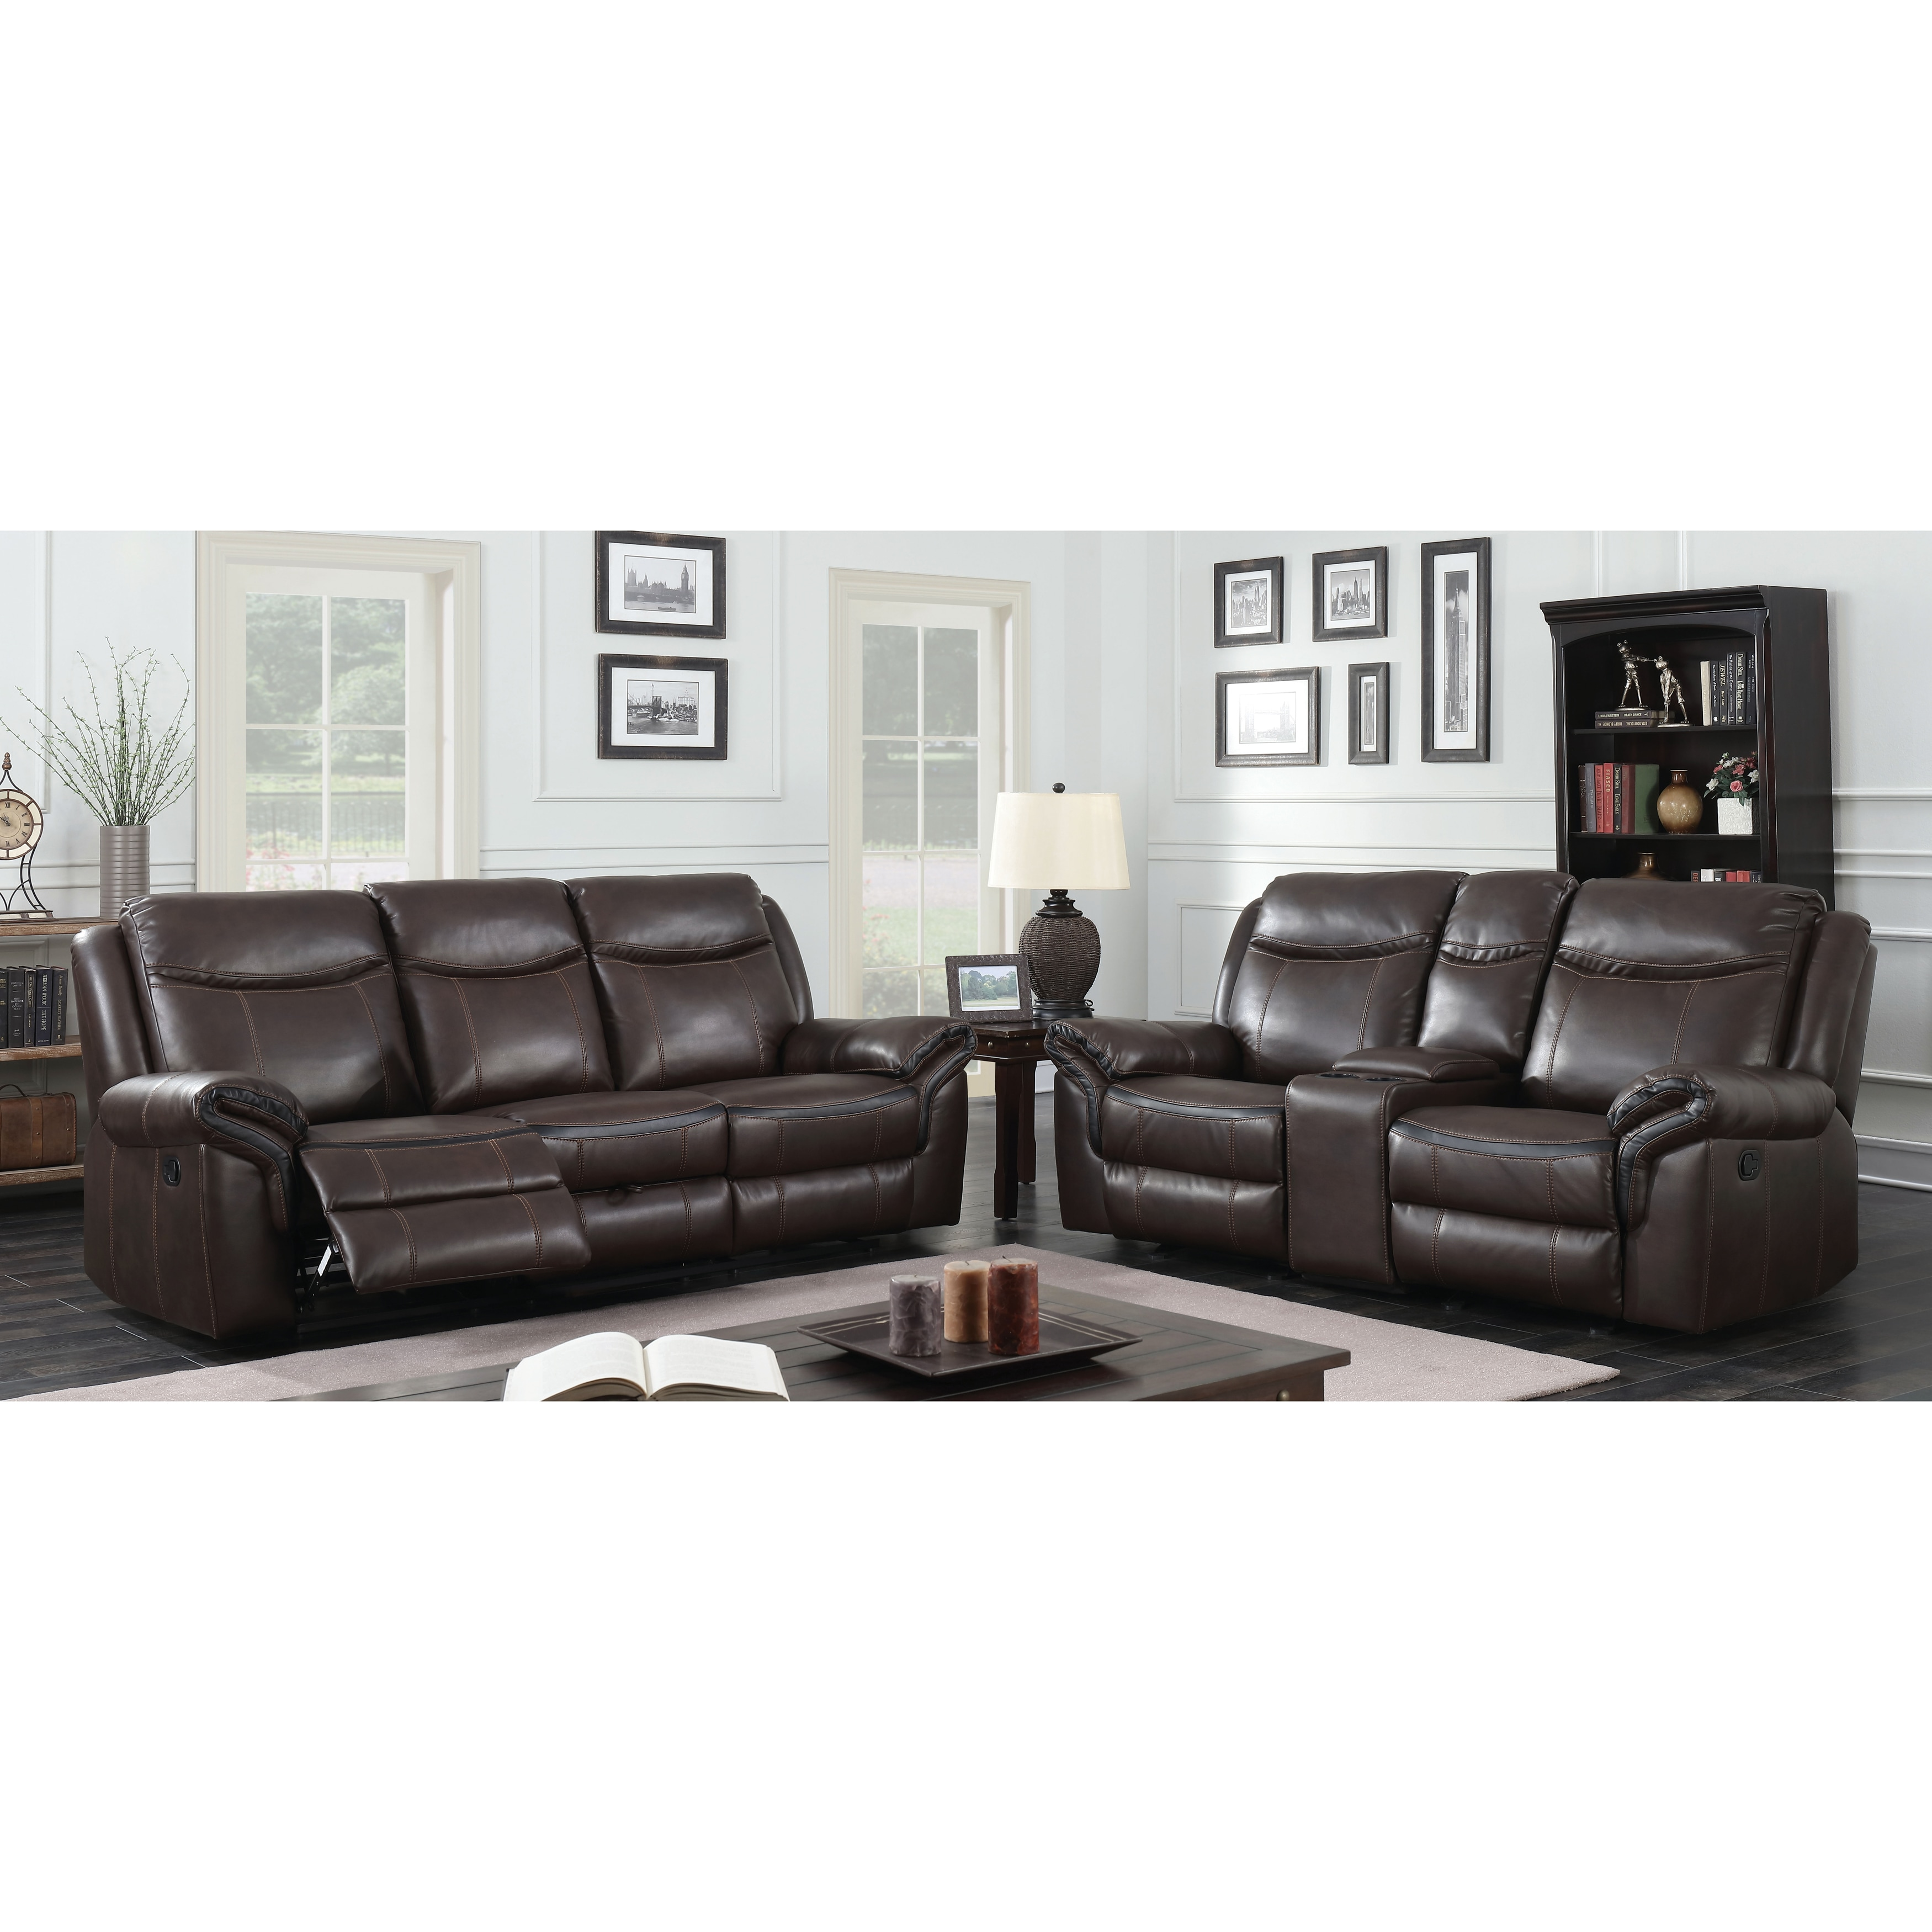 Furniture of America Jefferson Transitional 3-piece Brown Leather ...